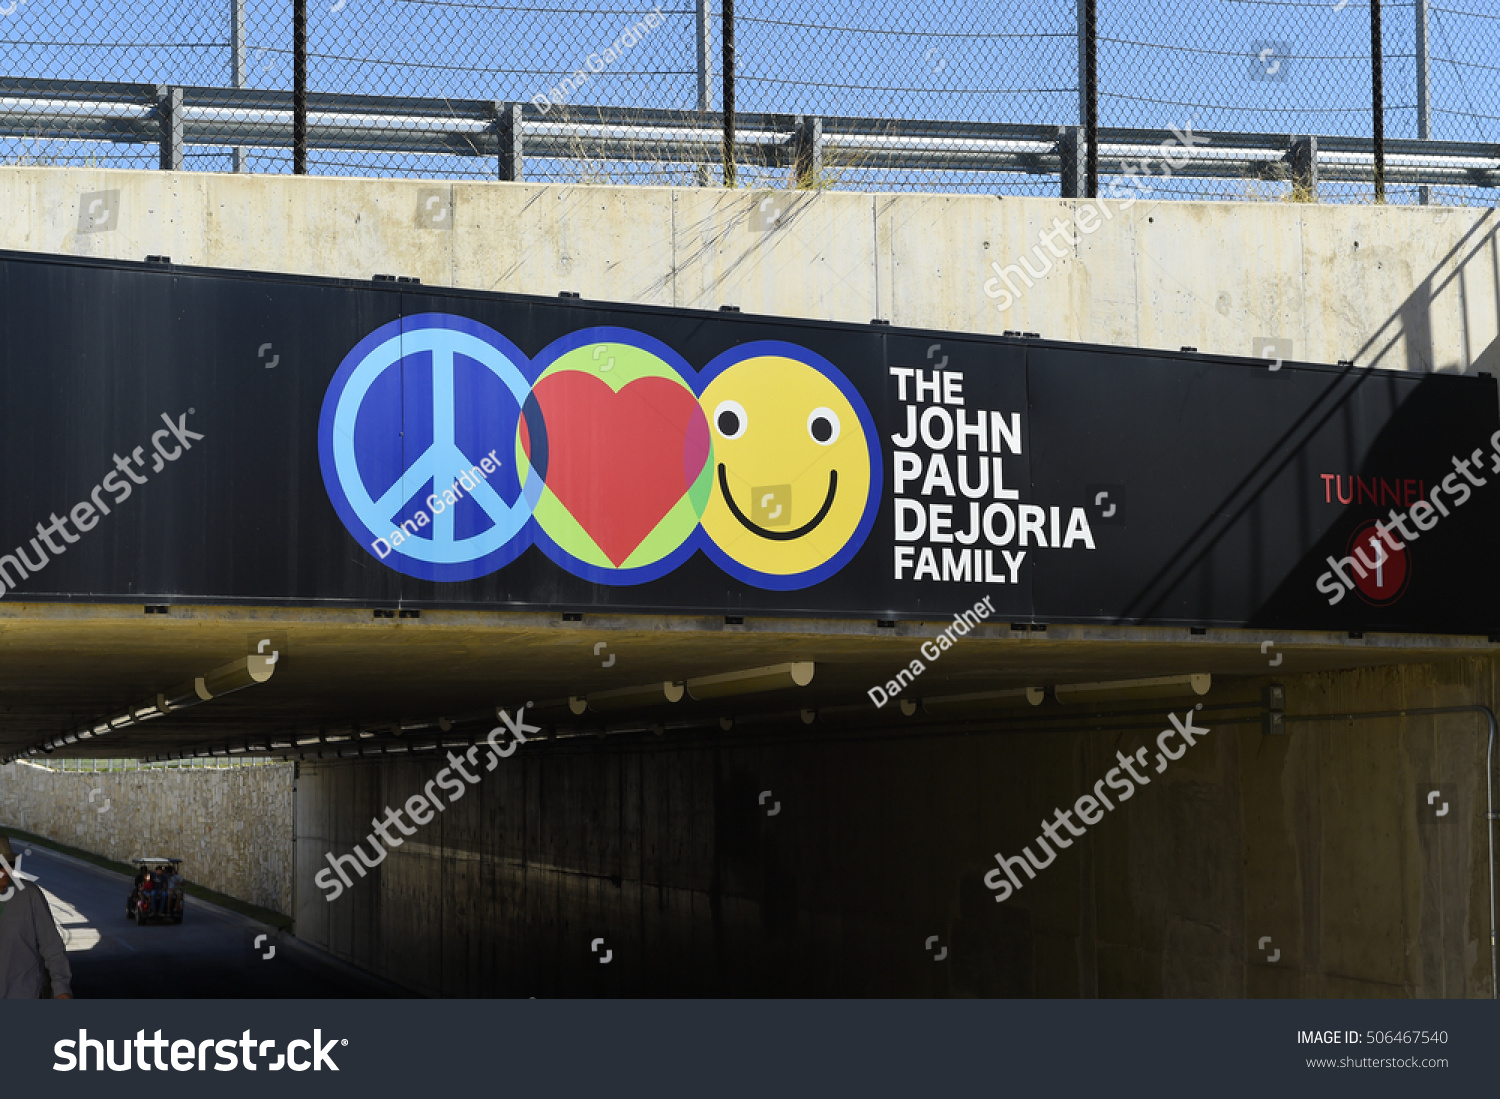 https://image.shutterstock.com/z/stock-photo-austin-october-the-john-paul-dejoria-family-tunnel-entrance-to-the-team-area-at-the-circuit-506467540.jpg